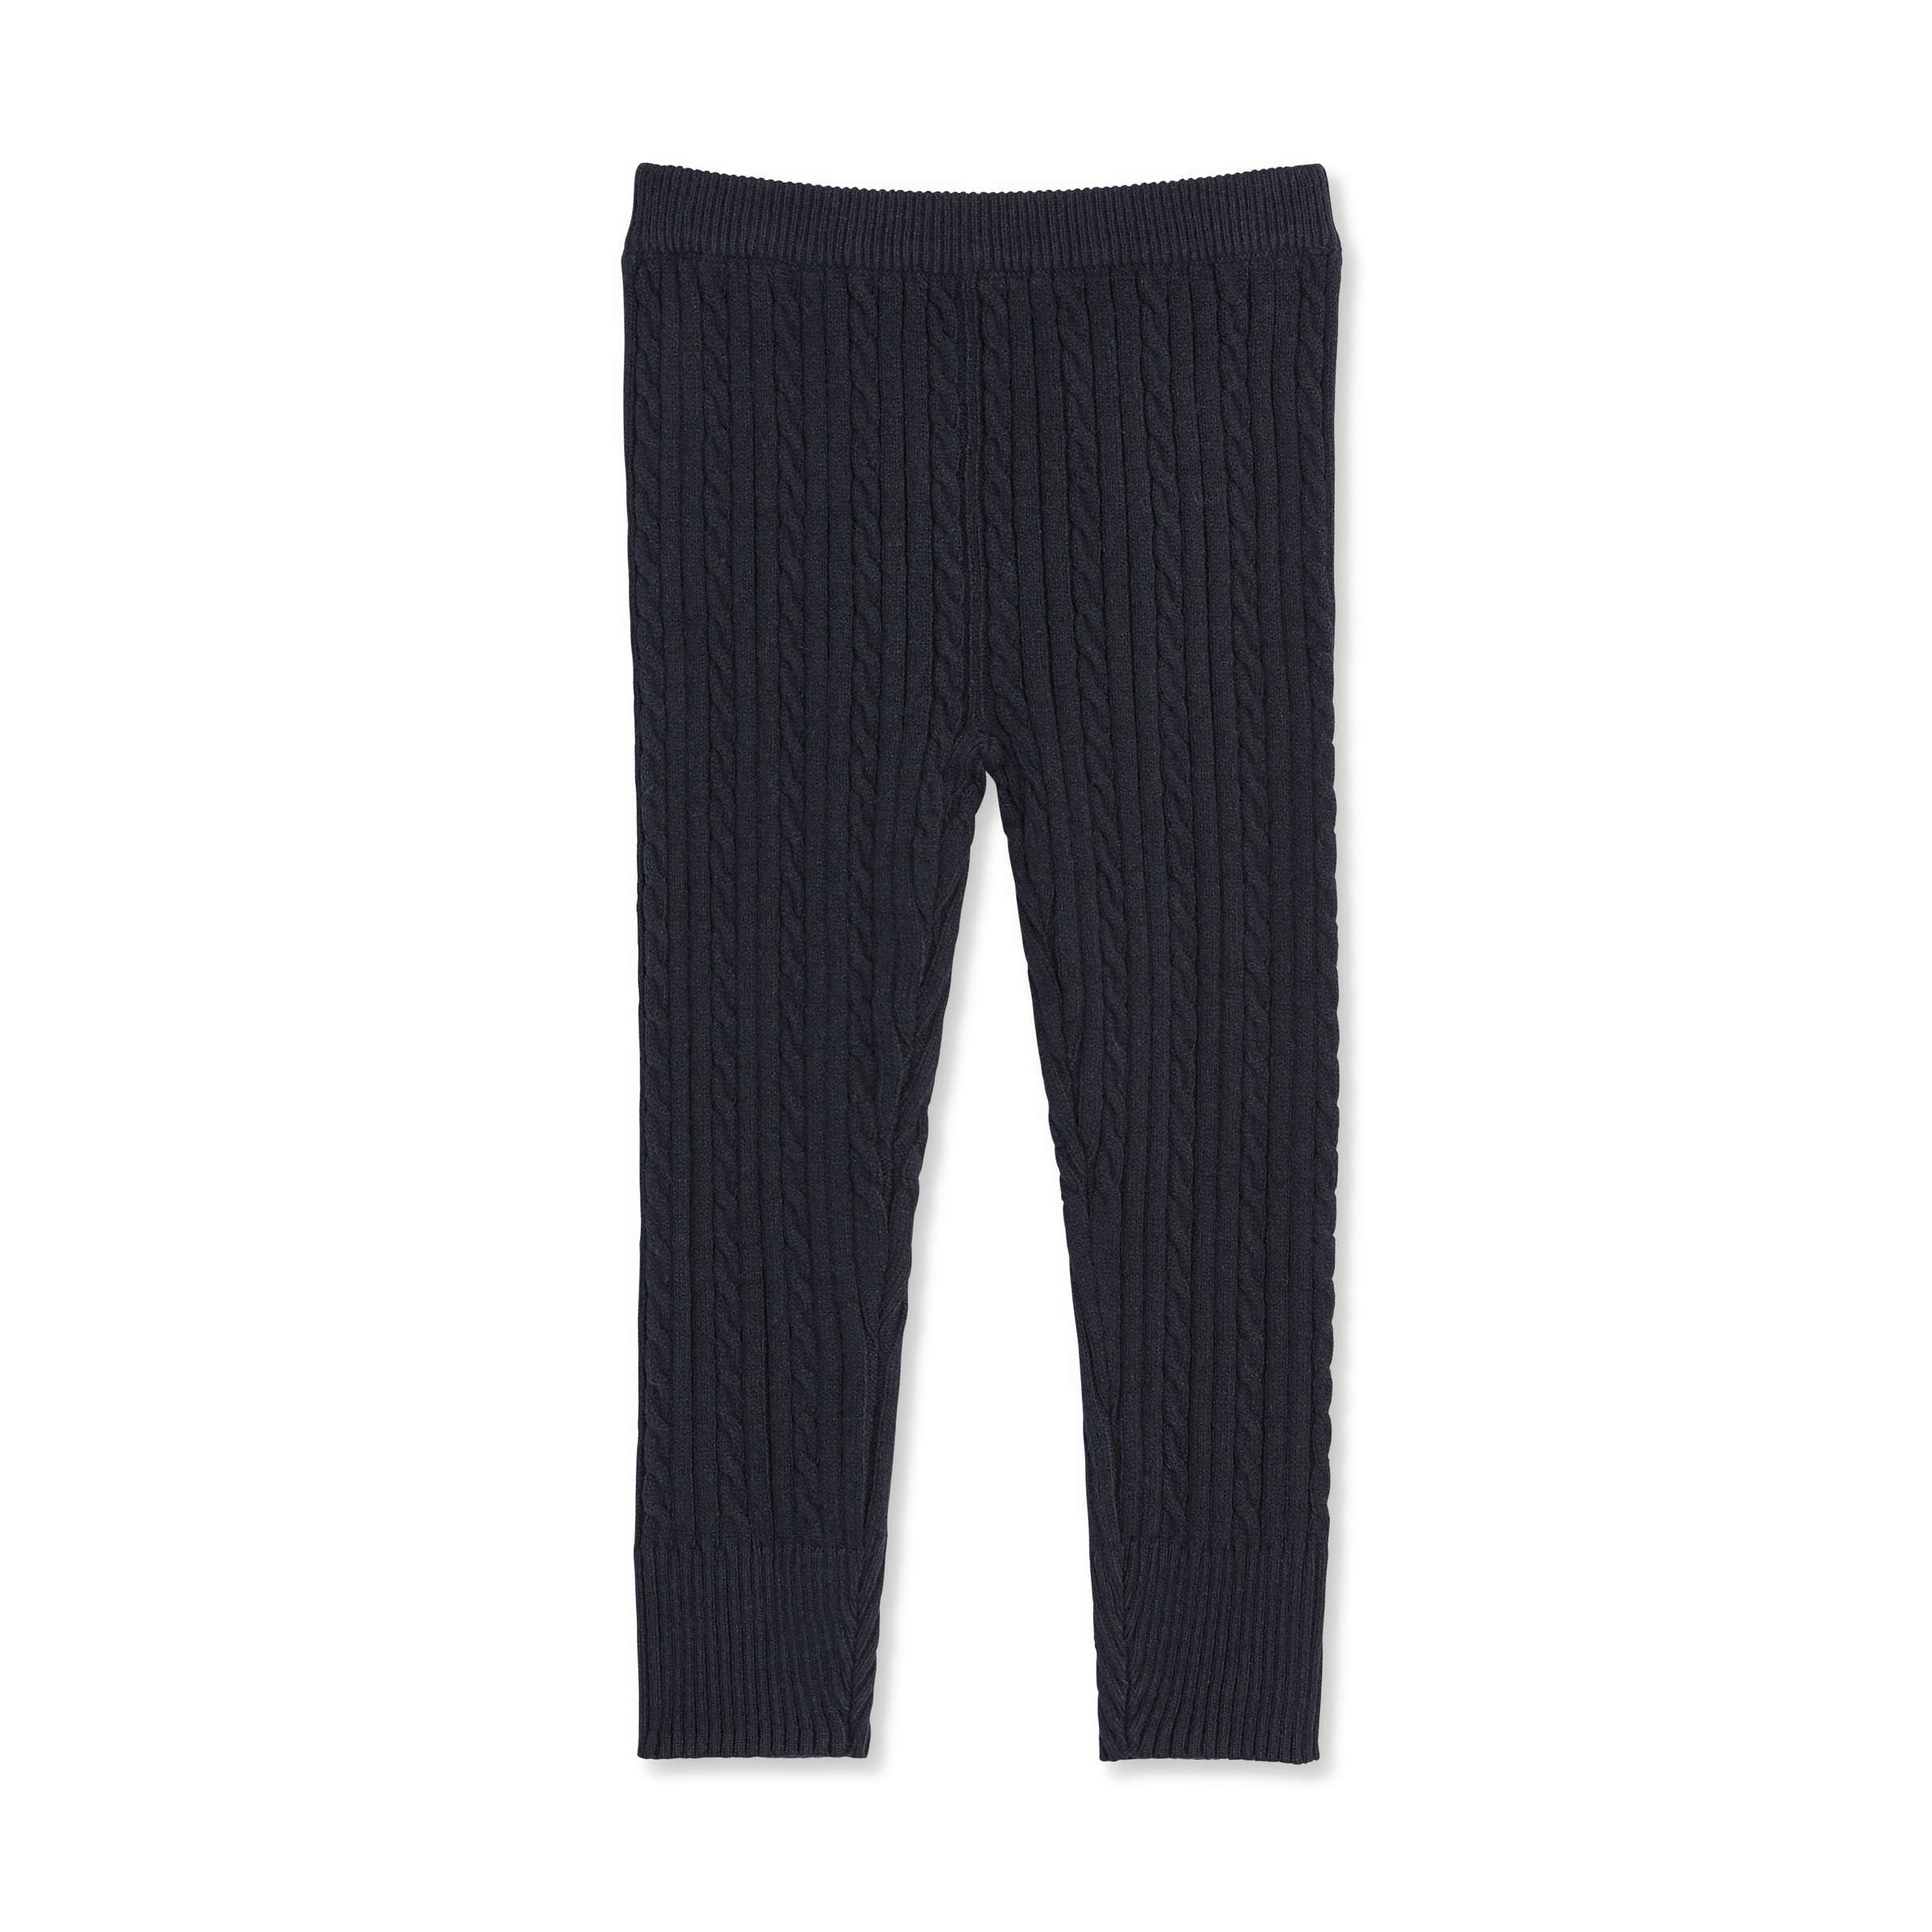 d50b91f468258 Toddler Girls' Cable Knit Legging in JF Midnight Blue from Joe Fresh